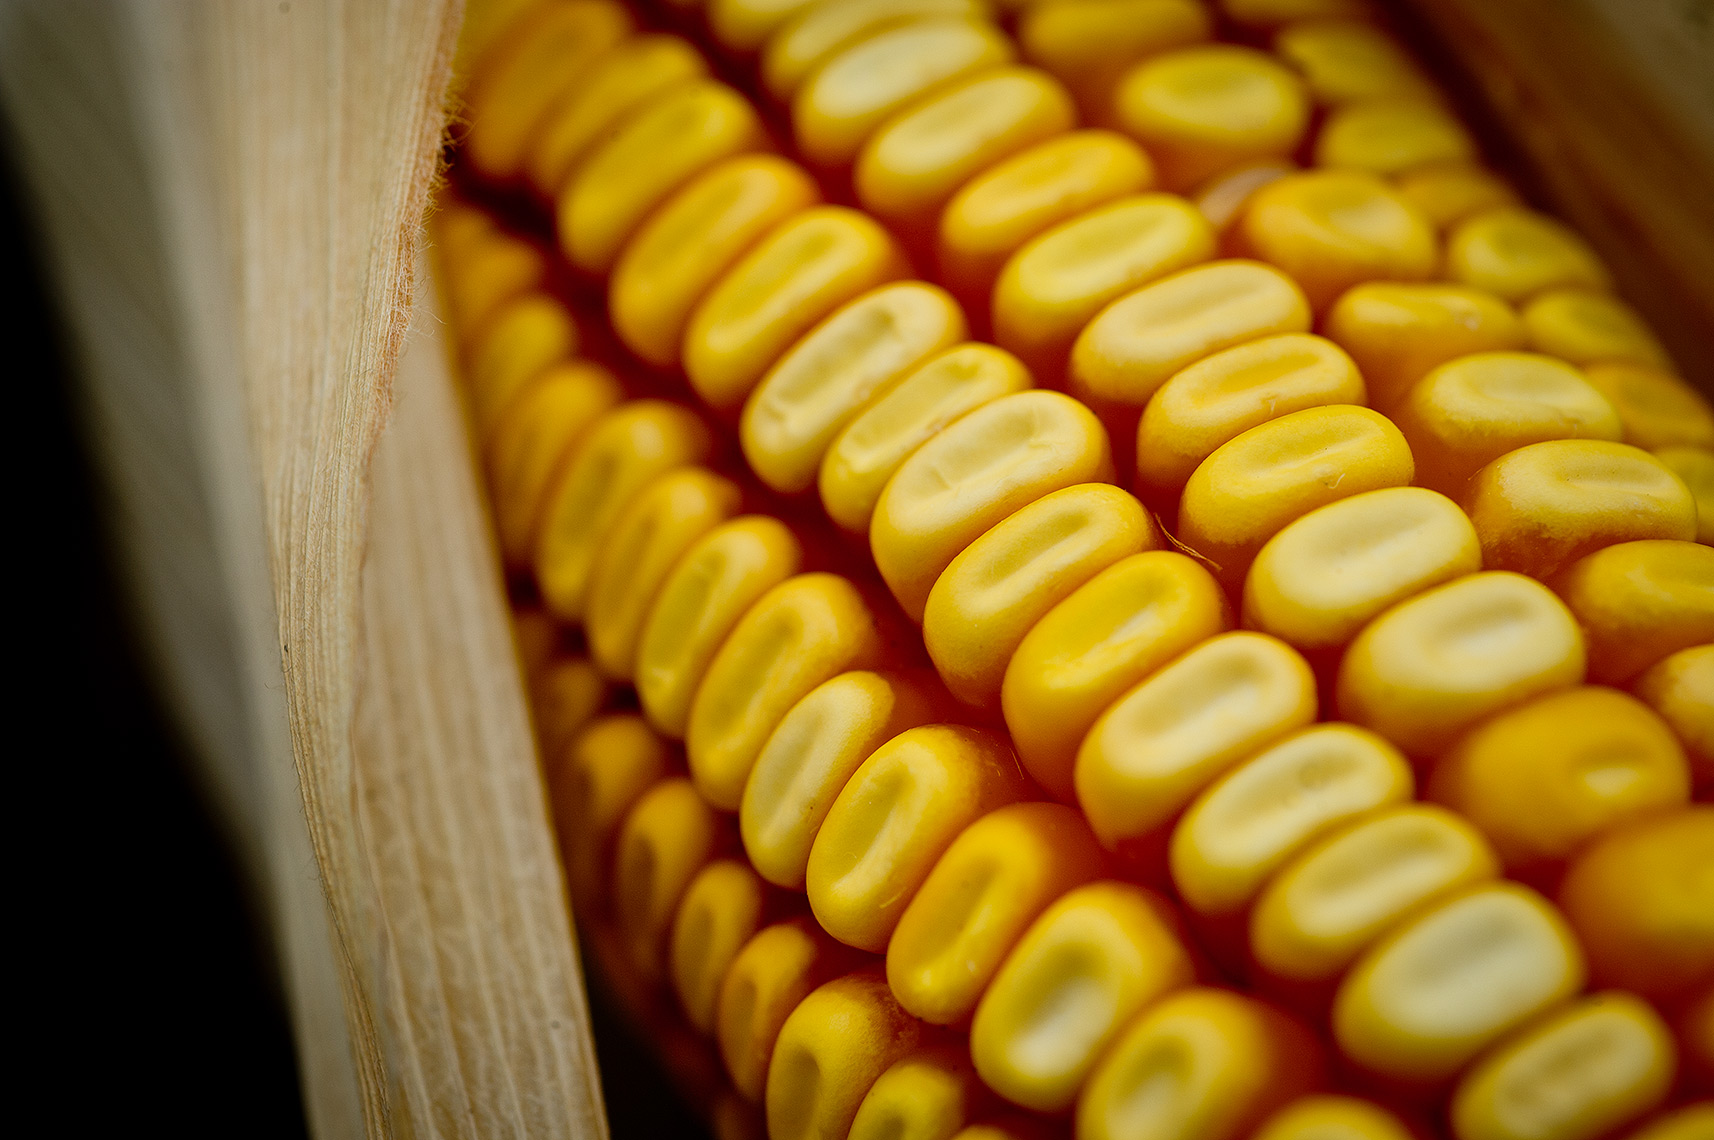 Ear of Corn Photograph